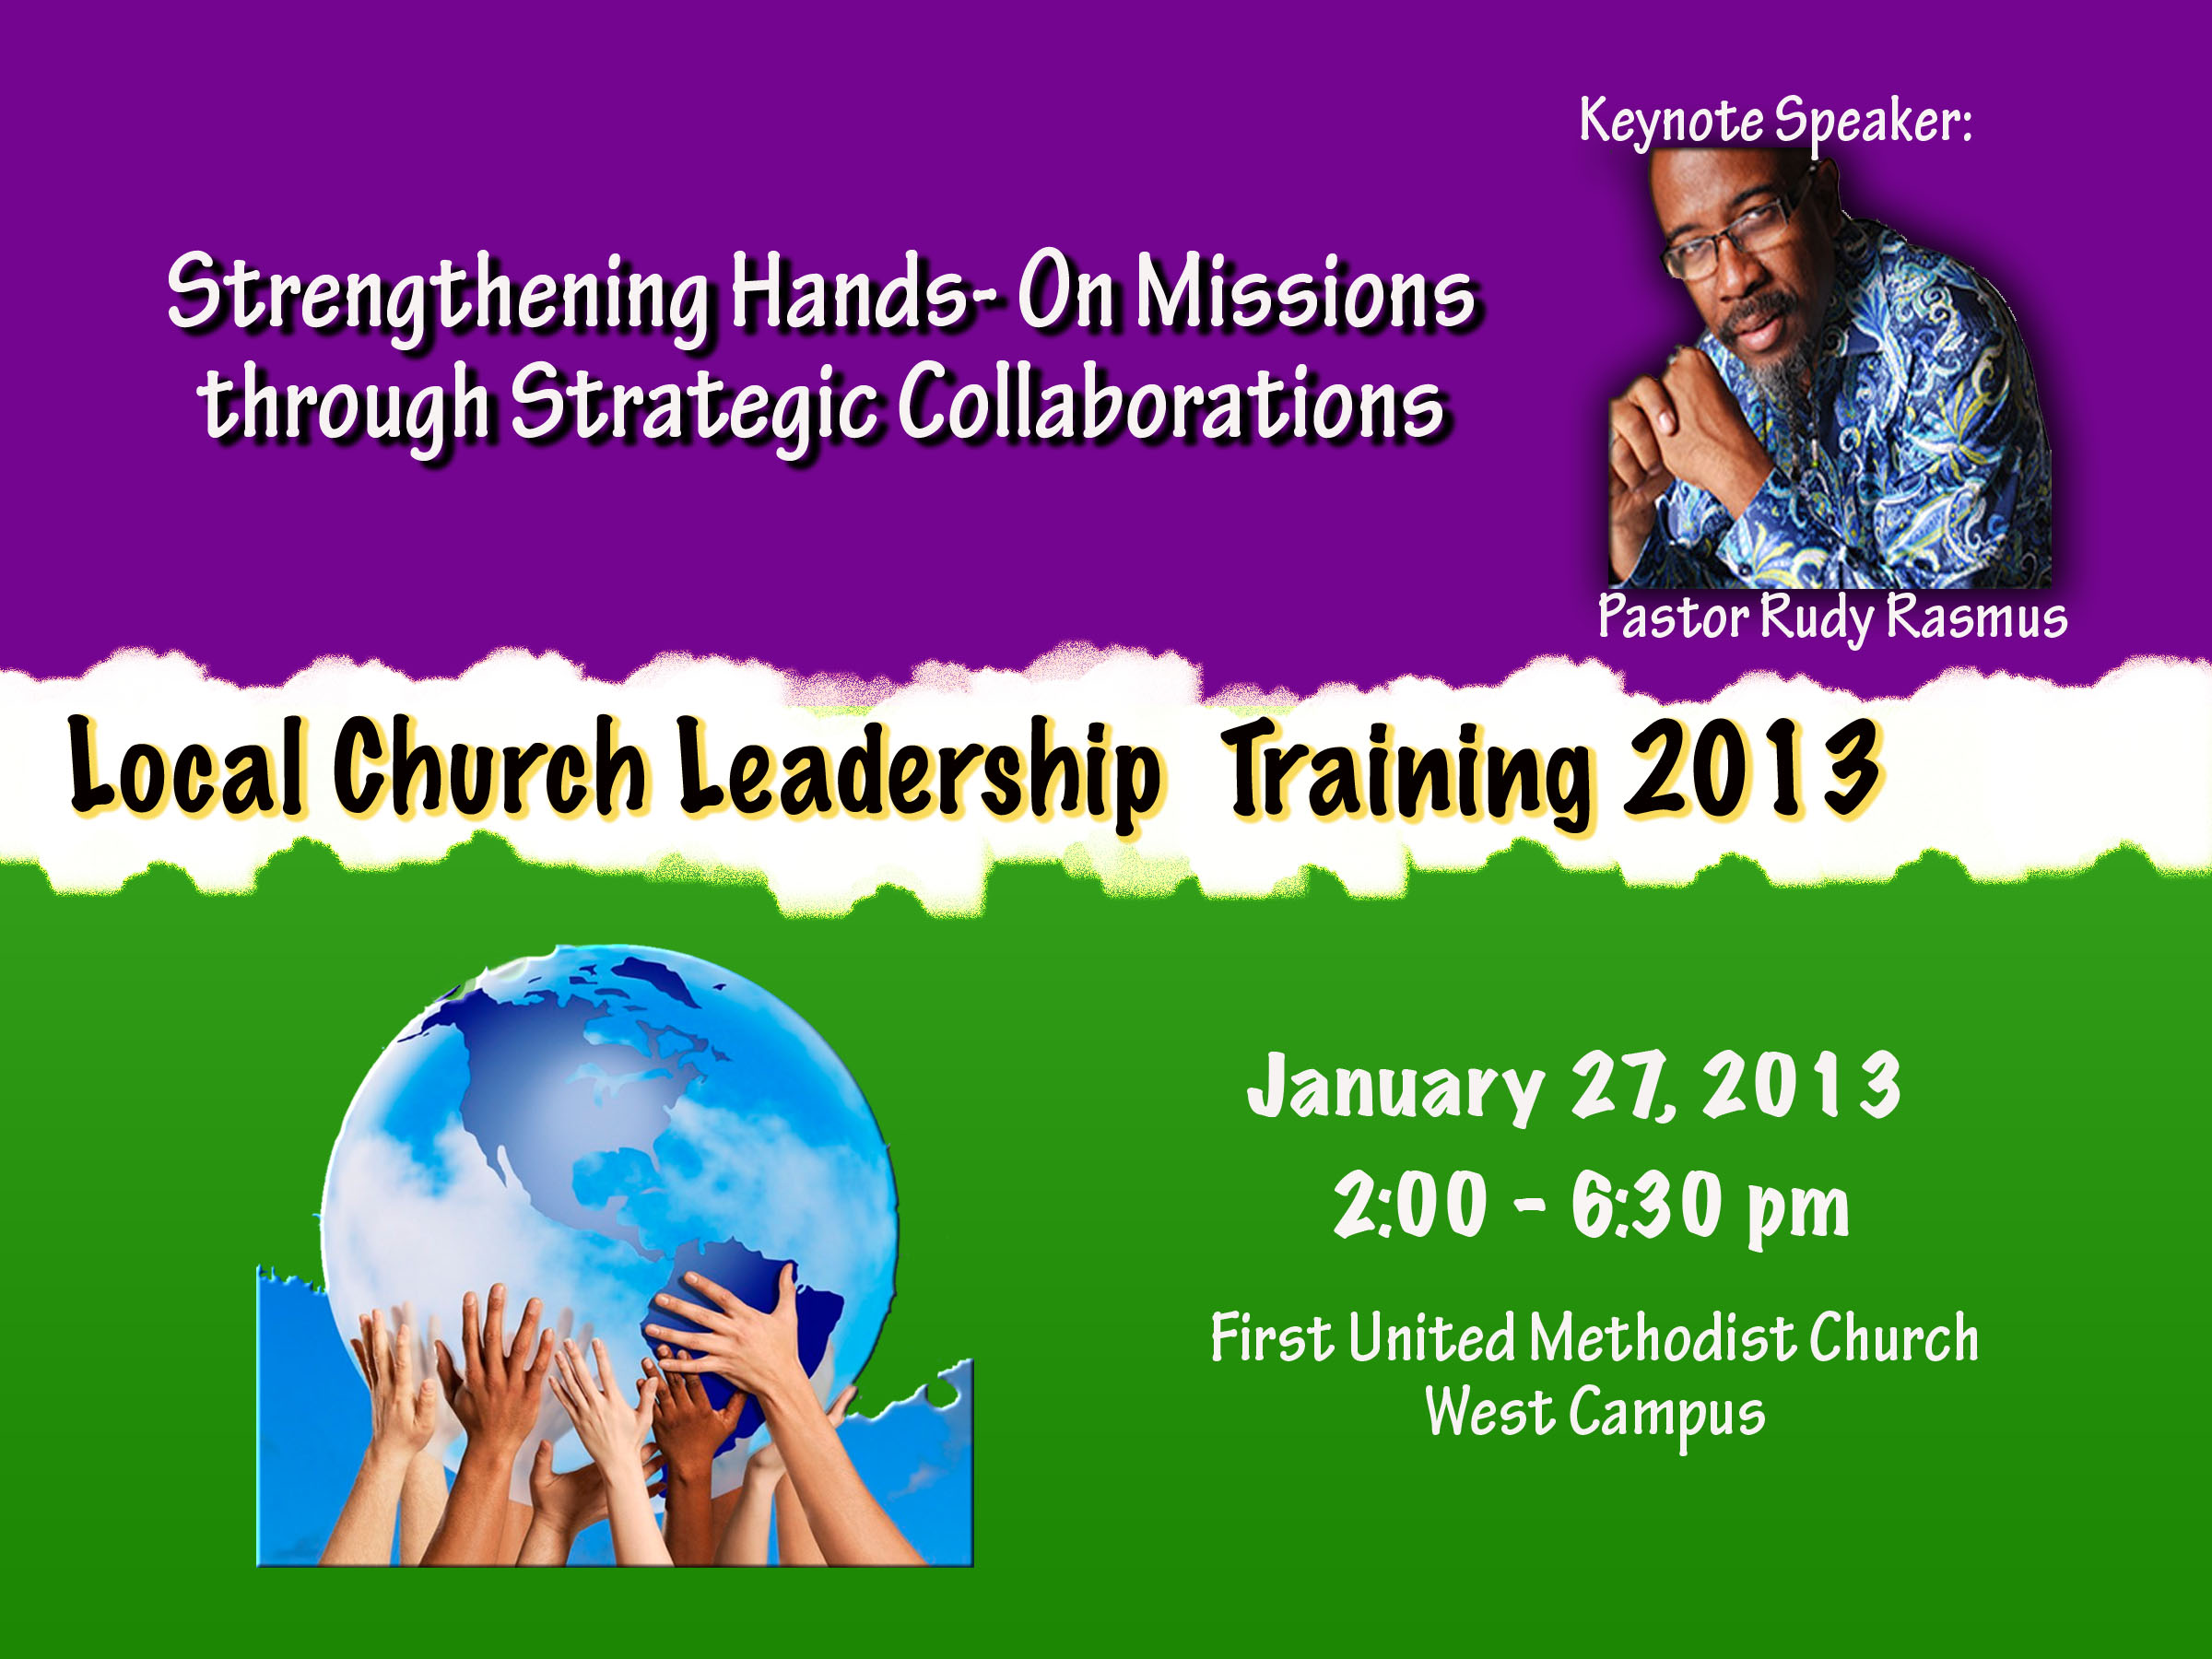 Informational graphic for Leadership Event featuring Pastor Rudy Rasmus,  January 17, 2013